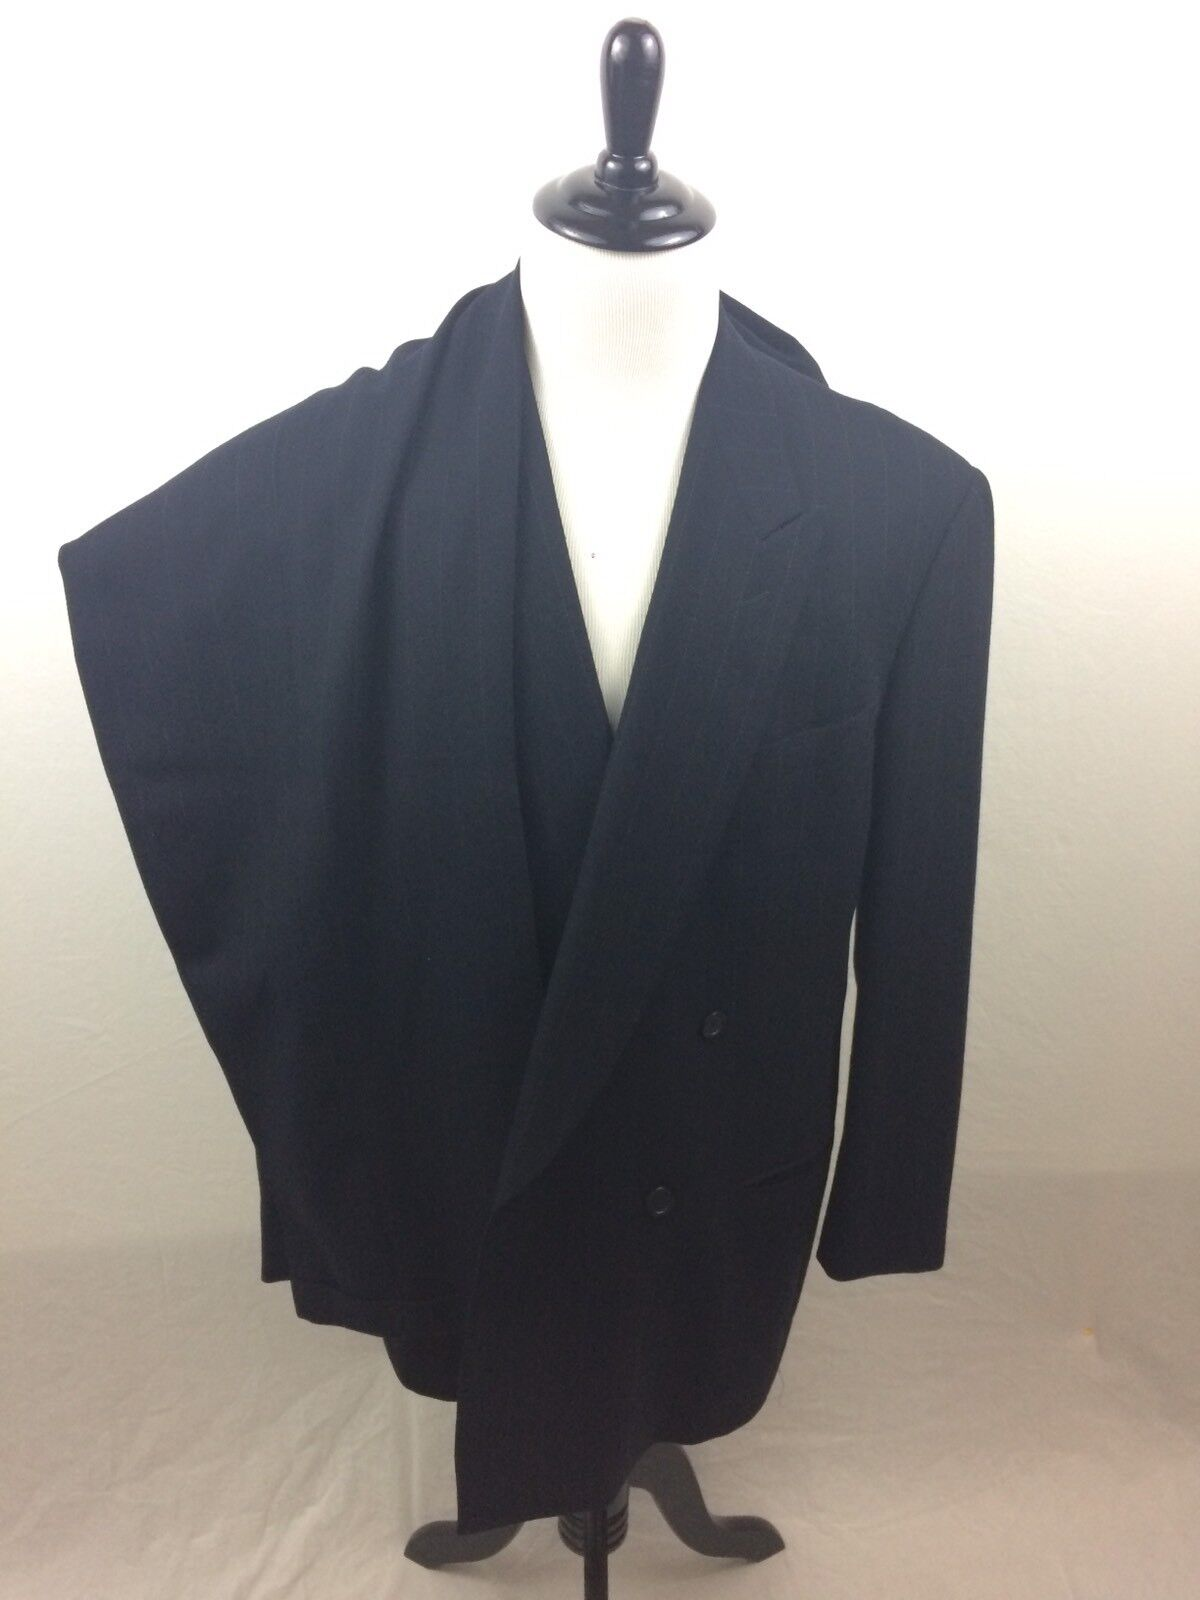 2 PC Giorgio Armani Suit Saks Fifth Ave 44L Double Breasted Navy  44 Long